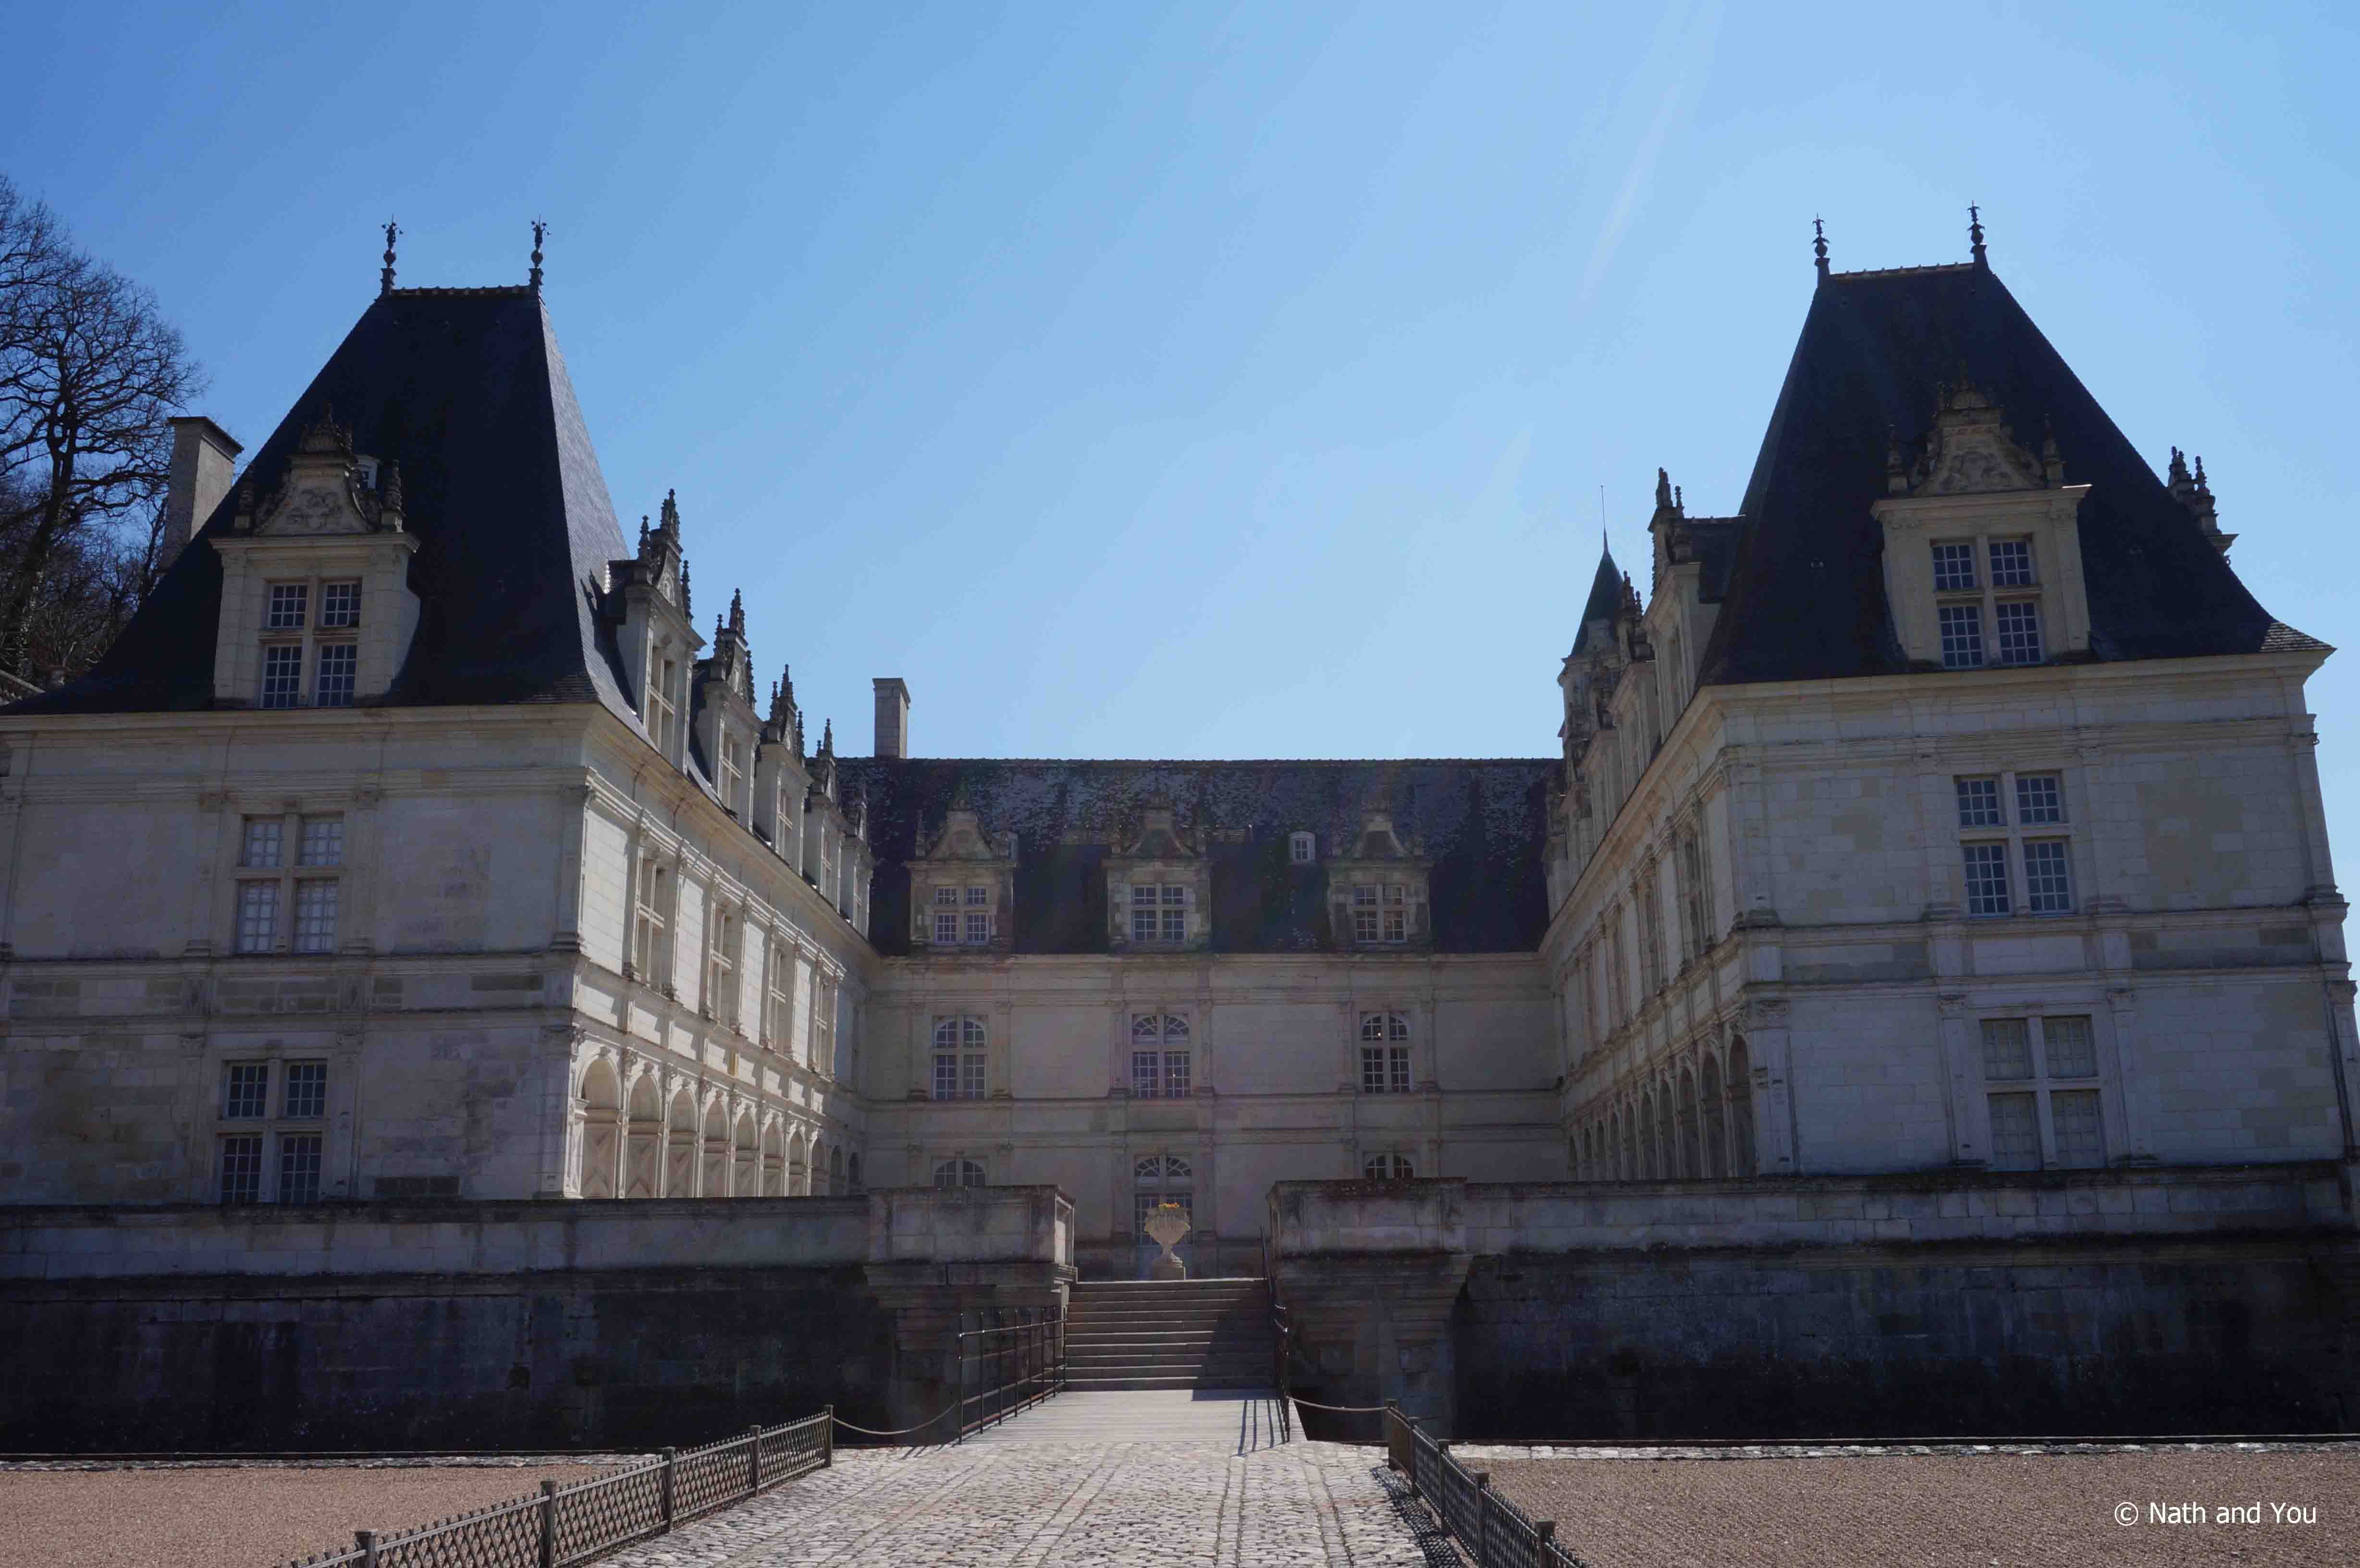 Villandry-1-Chateaux-Loire-Nath-and-you